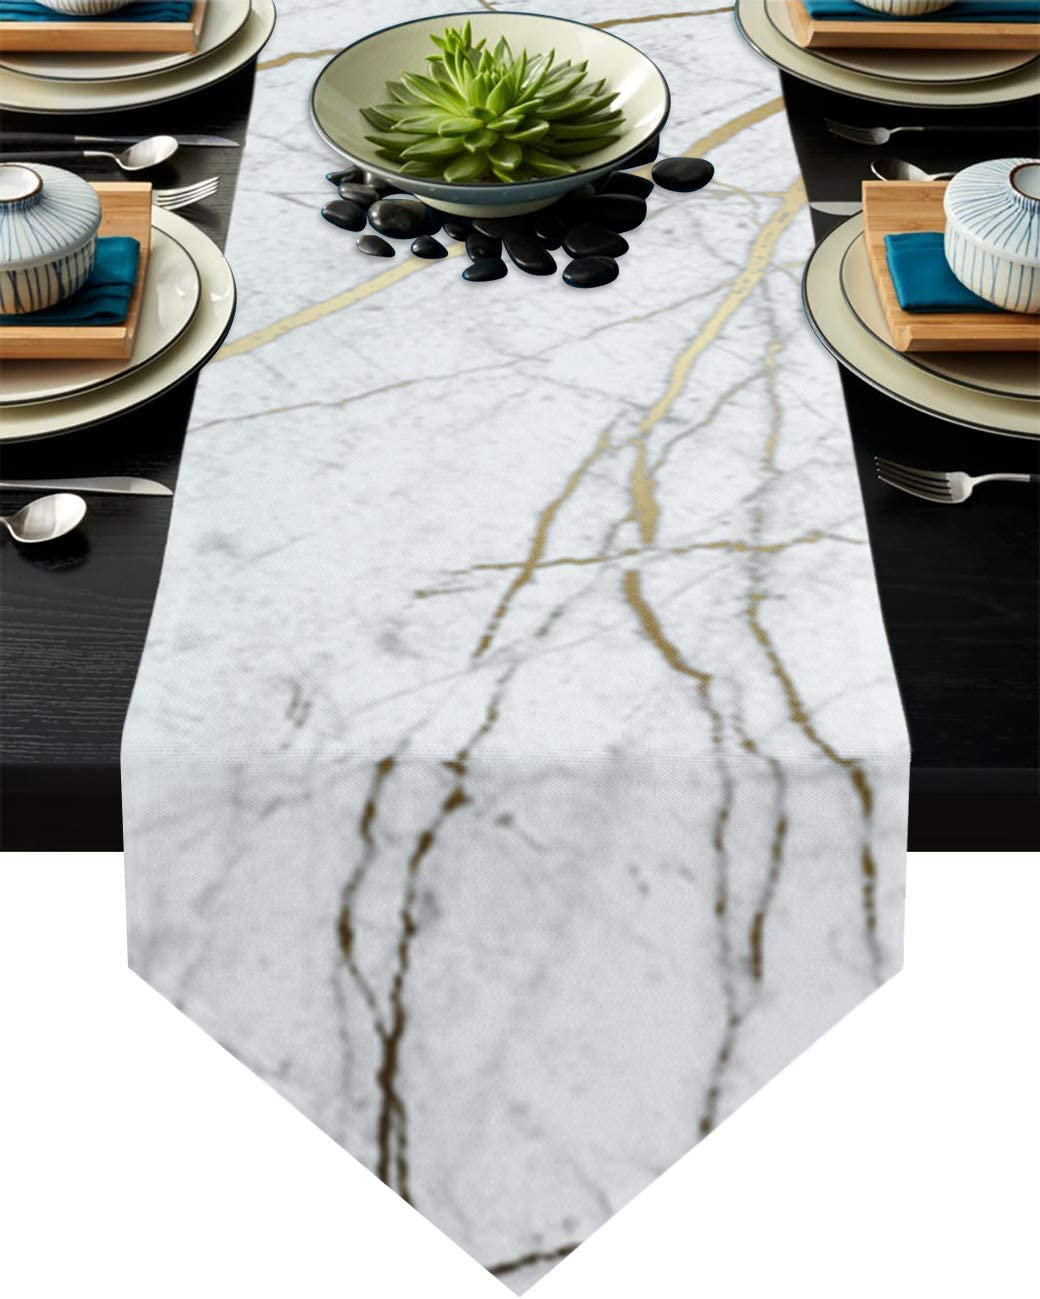 Cloud Dream Home Wild Symbol Marble Pattern Table Runner for Morden Greenery Garden Wedding Party Table Setting Decorations 16 x 72 Inches